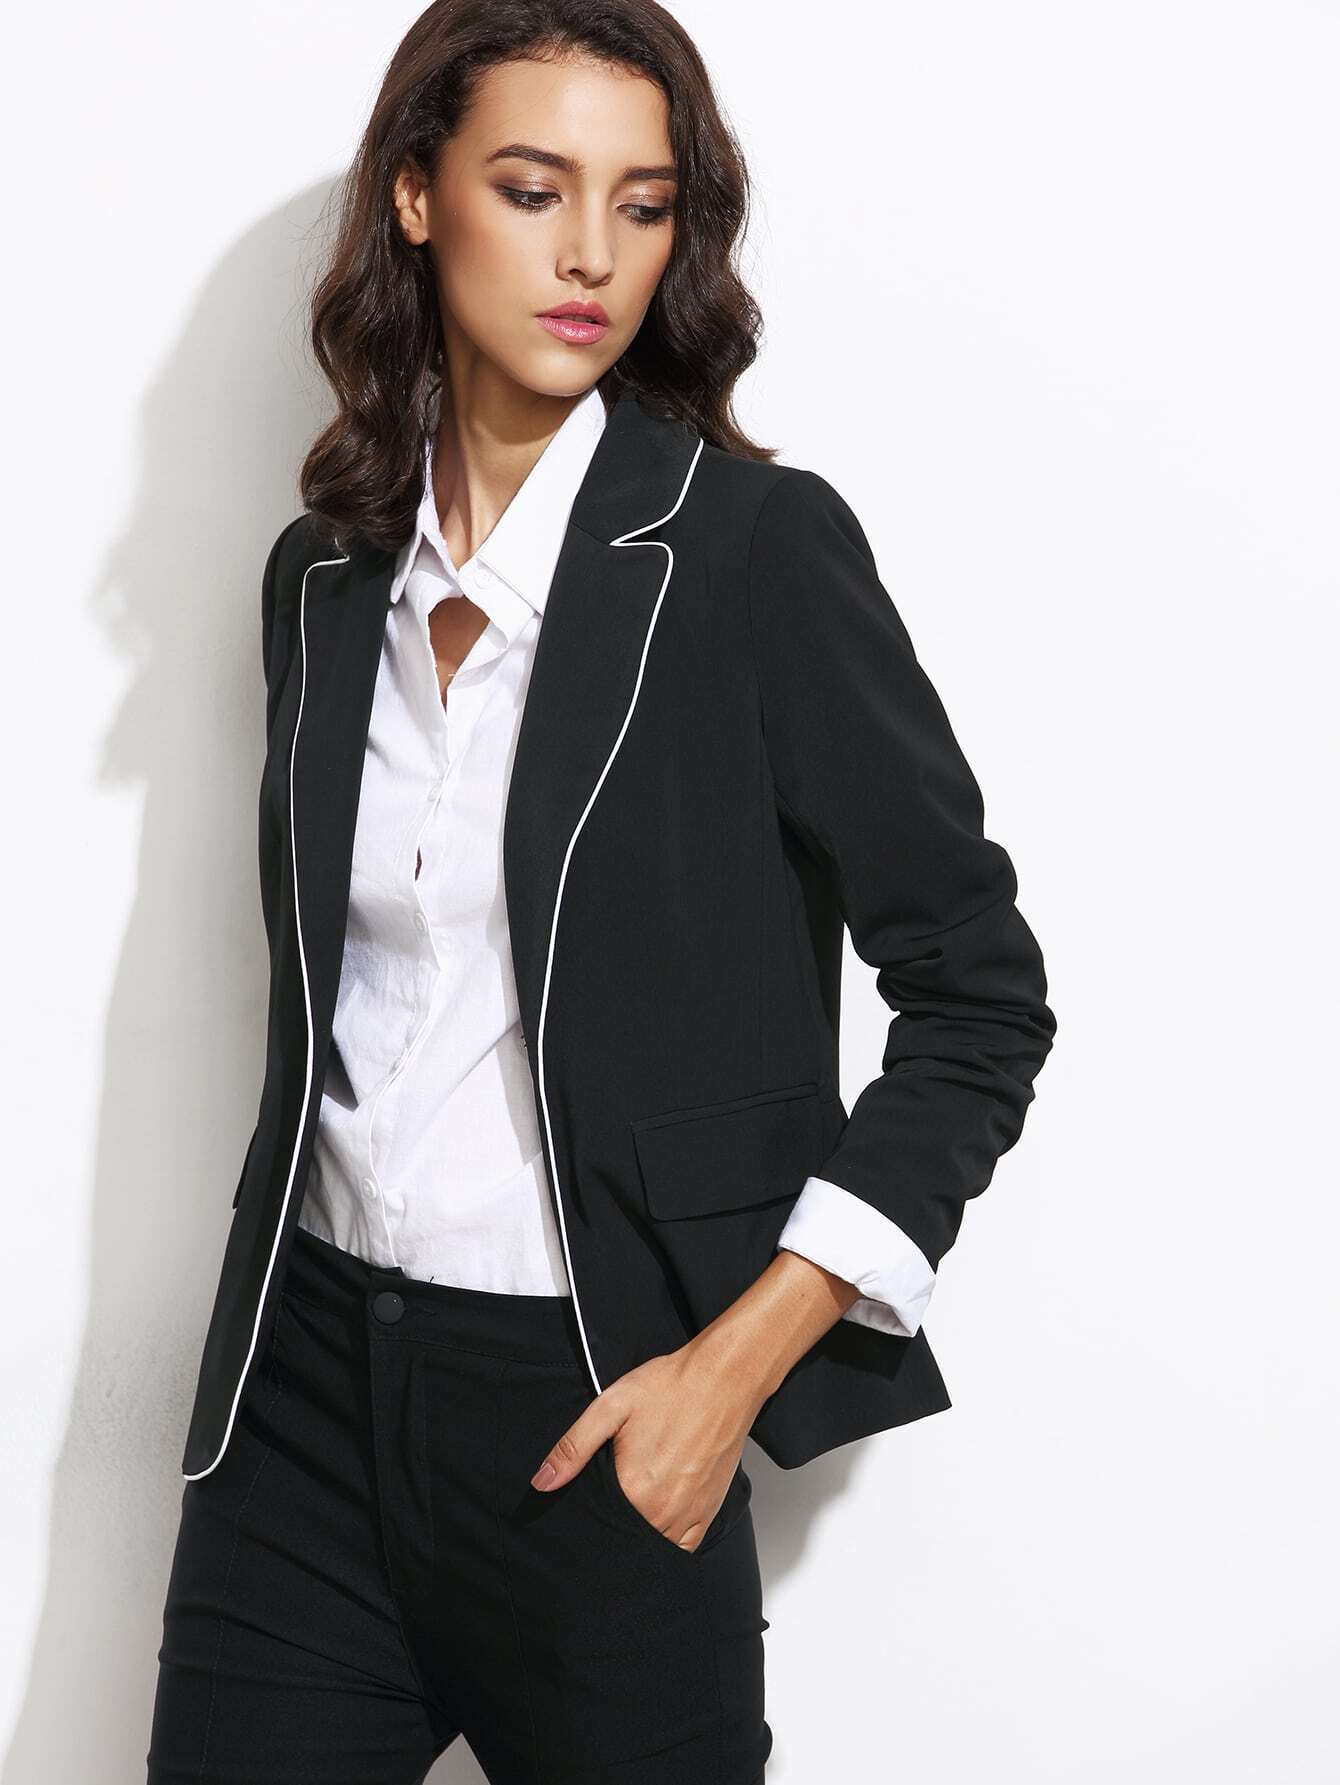 cc339fda9c1 Black Contrast Piping One Button Blazer With Flap Pocket EmmaCloth ...